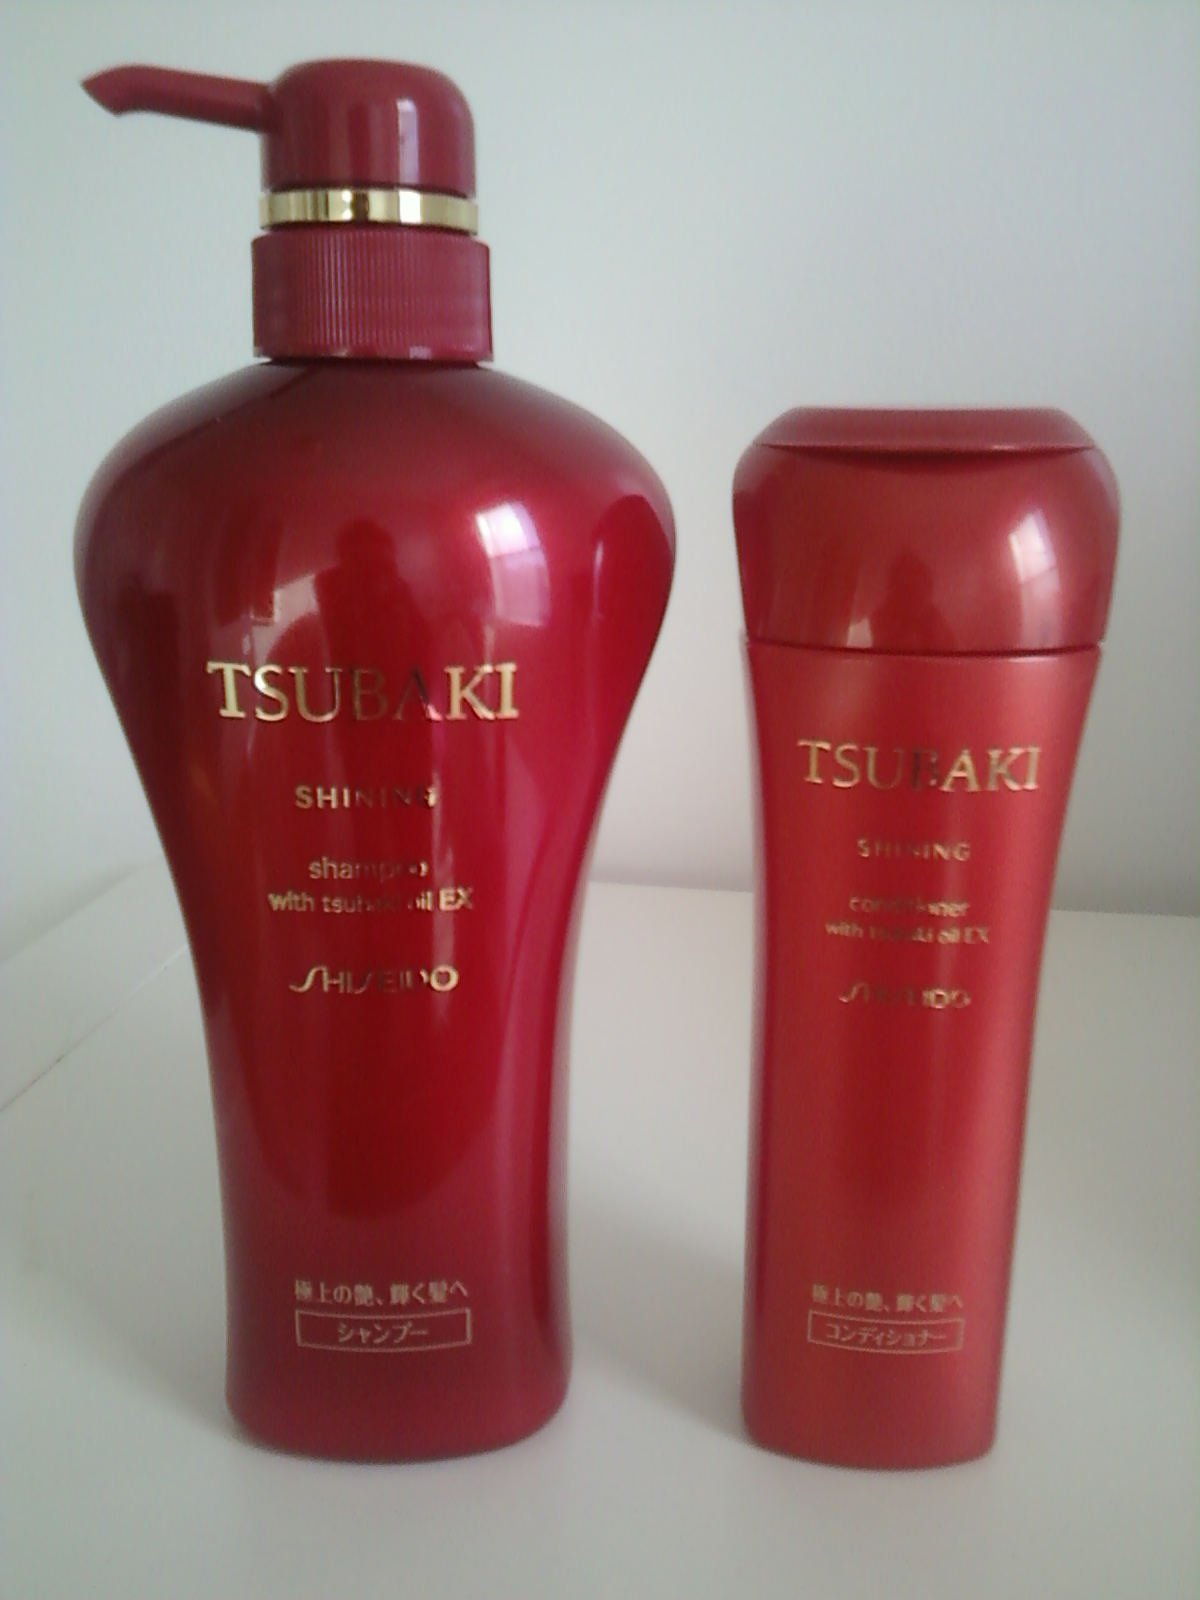 shiseido hair styling products tesshi テッシ shiseido tsubaki hair products 8323 | 1220101219 00